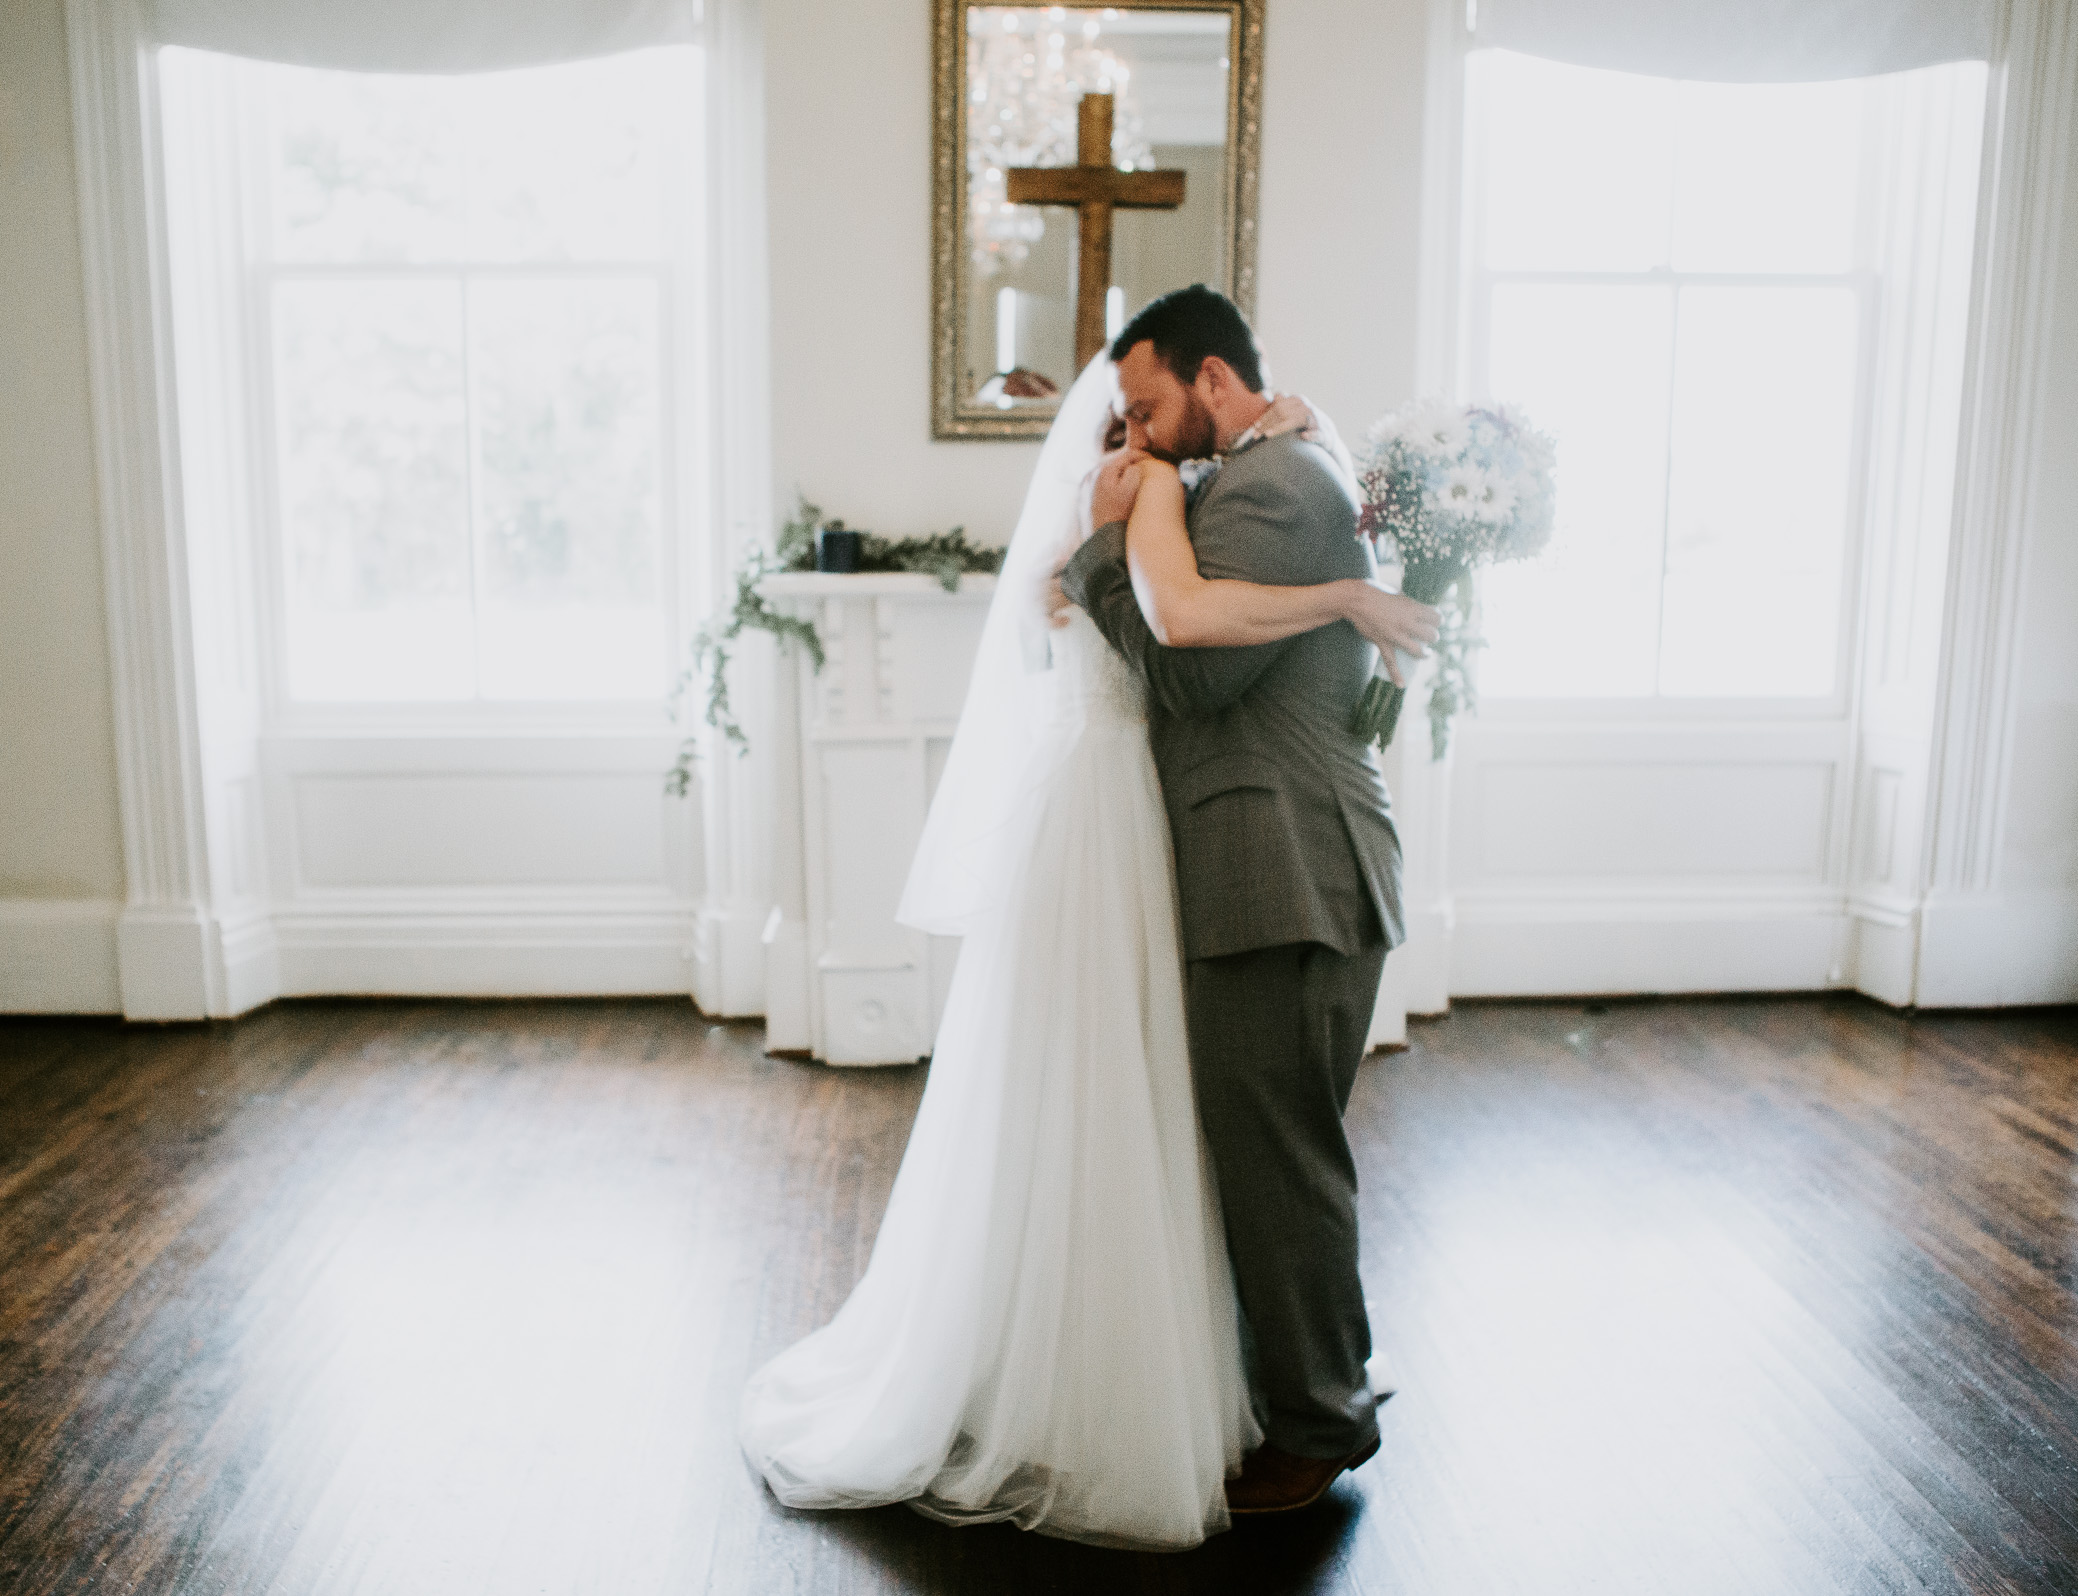 Tuscaloosa, Alabama wedding photography at The Historic Drish House on June 2nd, 2018 by David A. Smith of DSmithImages Wedding Photography, Portraits, and Events in the Birmingham, Alabama area.